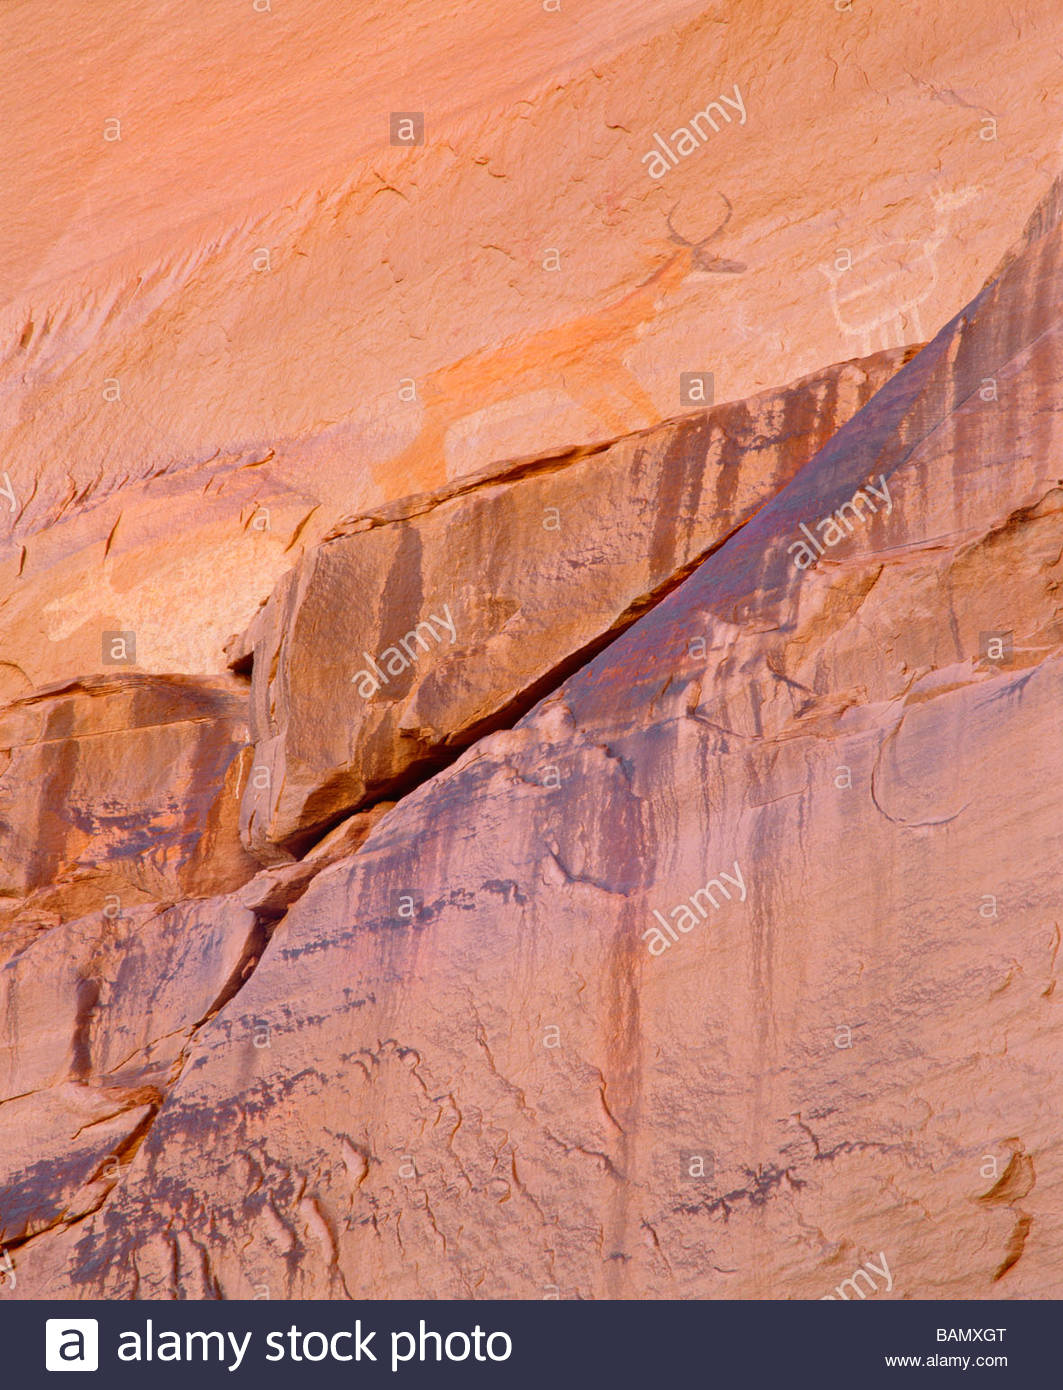 Anasazi and  Navajo pictographs at  Antelope House Canyon del Muerto Canyon de Chelly National Monument Arizona - Stock Image